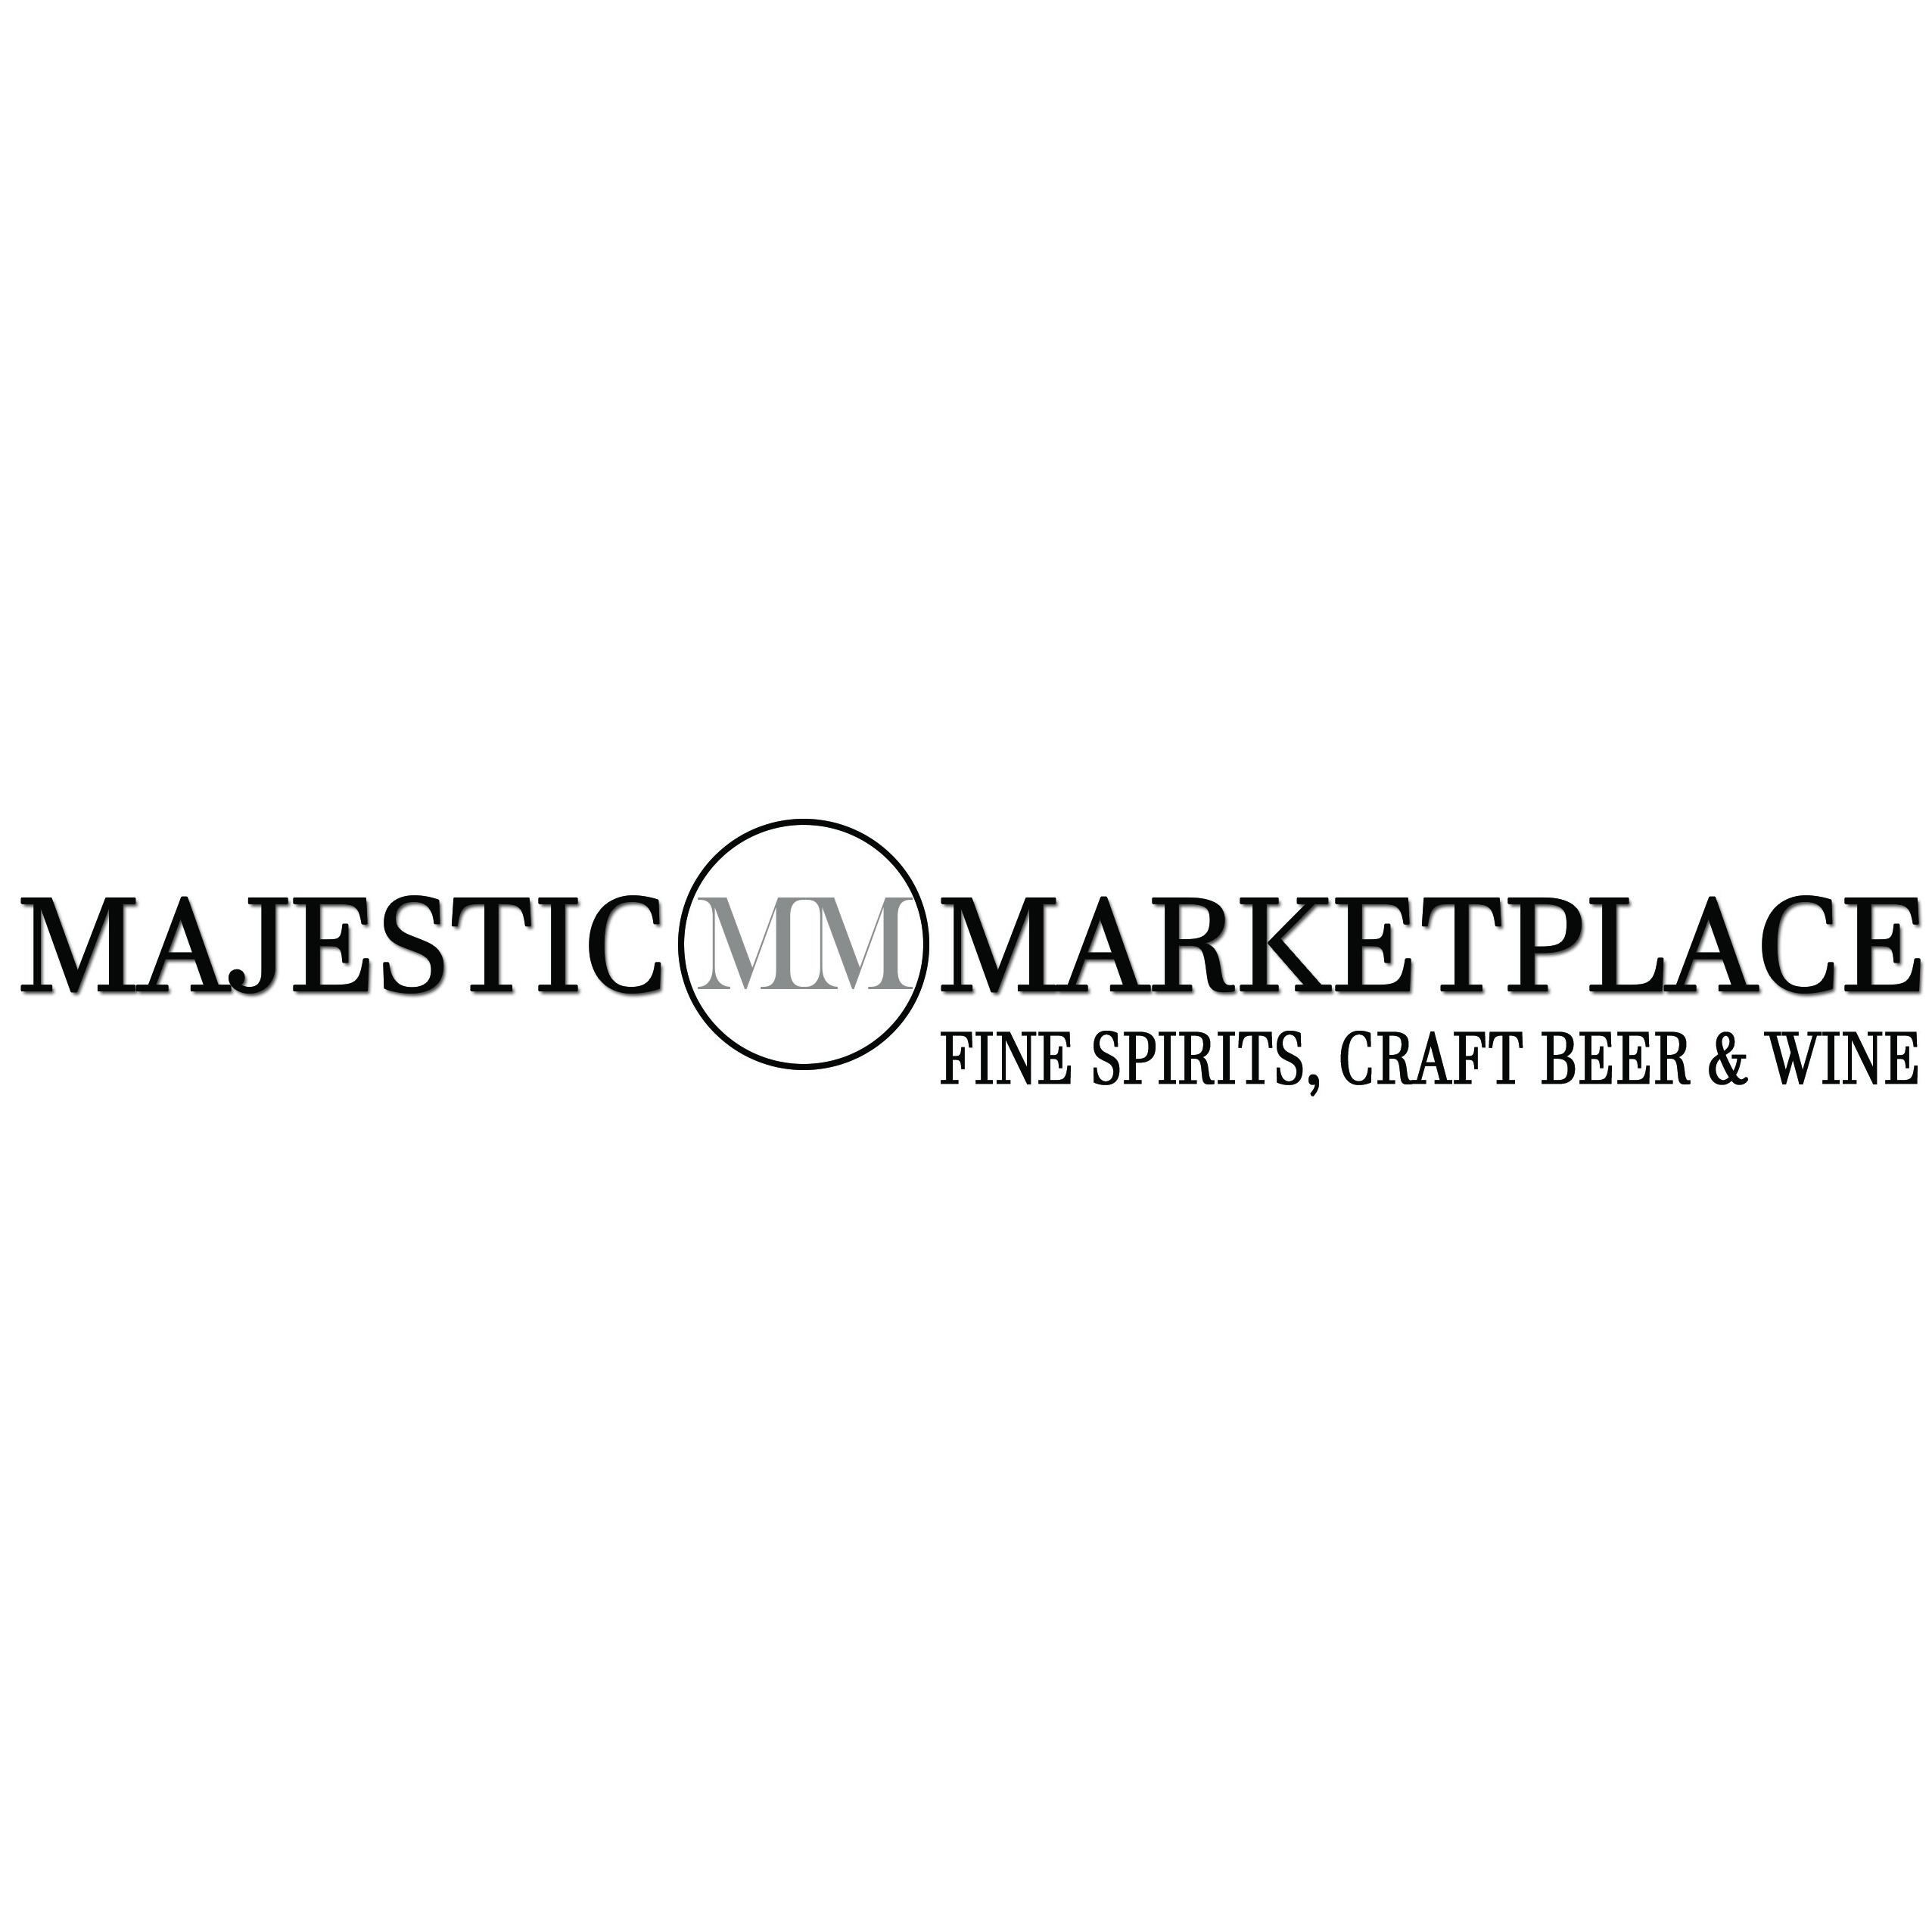 Majestic Marketplace